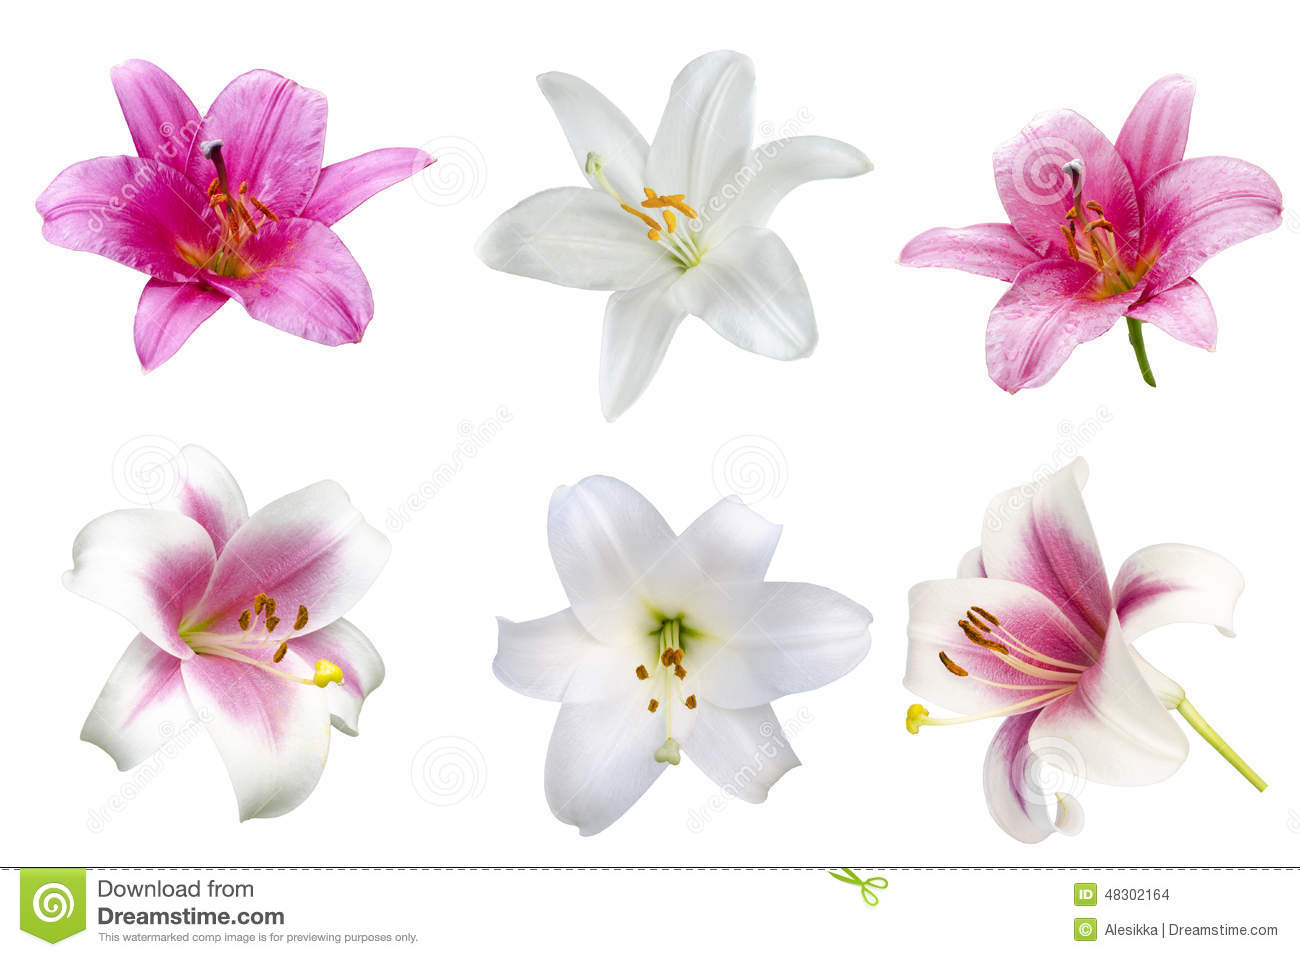 Lily varieties flowers stock photo image of copy beauty 48302164 download lily varieties flowers stock photo image of copy beauty 48302164 izmirmasajfo